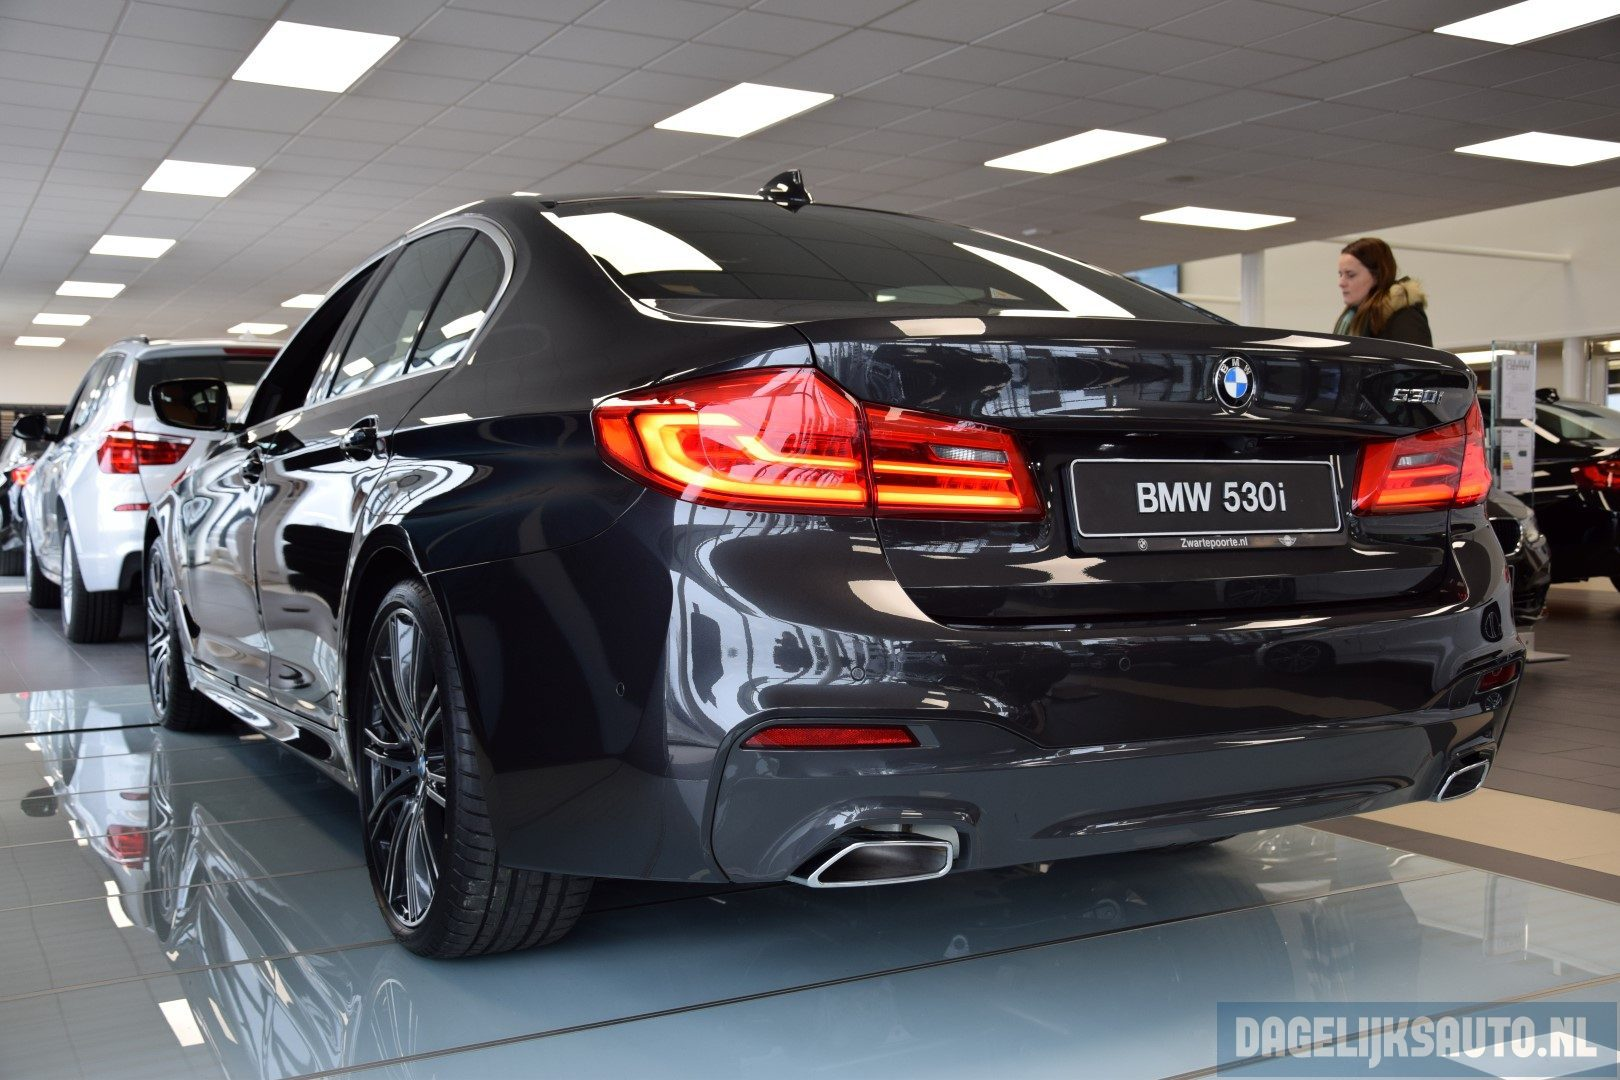 showroomdebuut nieuwe bmw 5 serie sedan. Black Bedroom Furniture Sets. Home Design Ideas